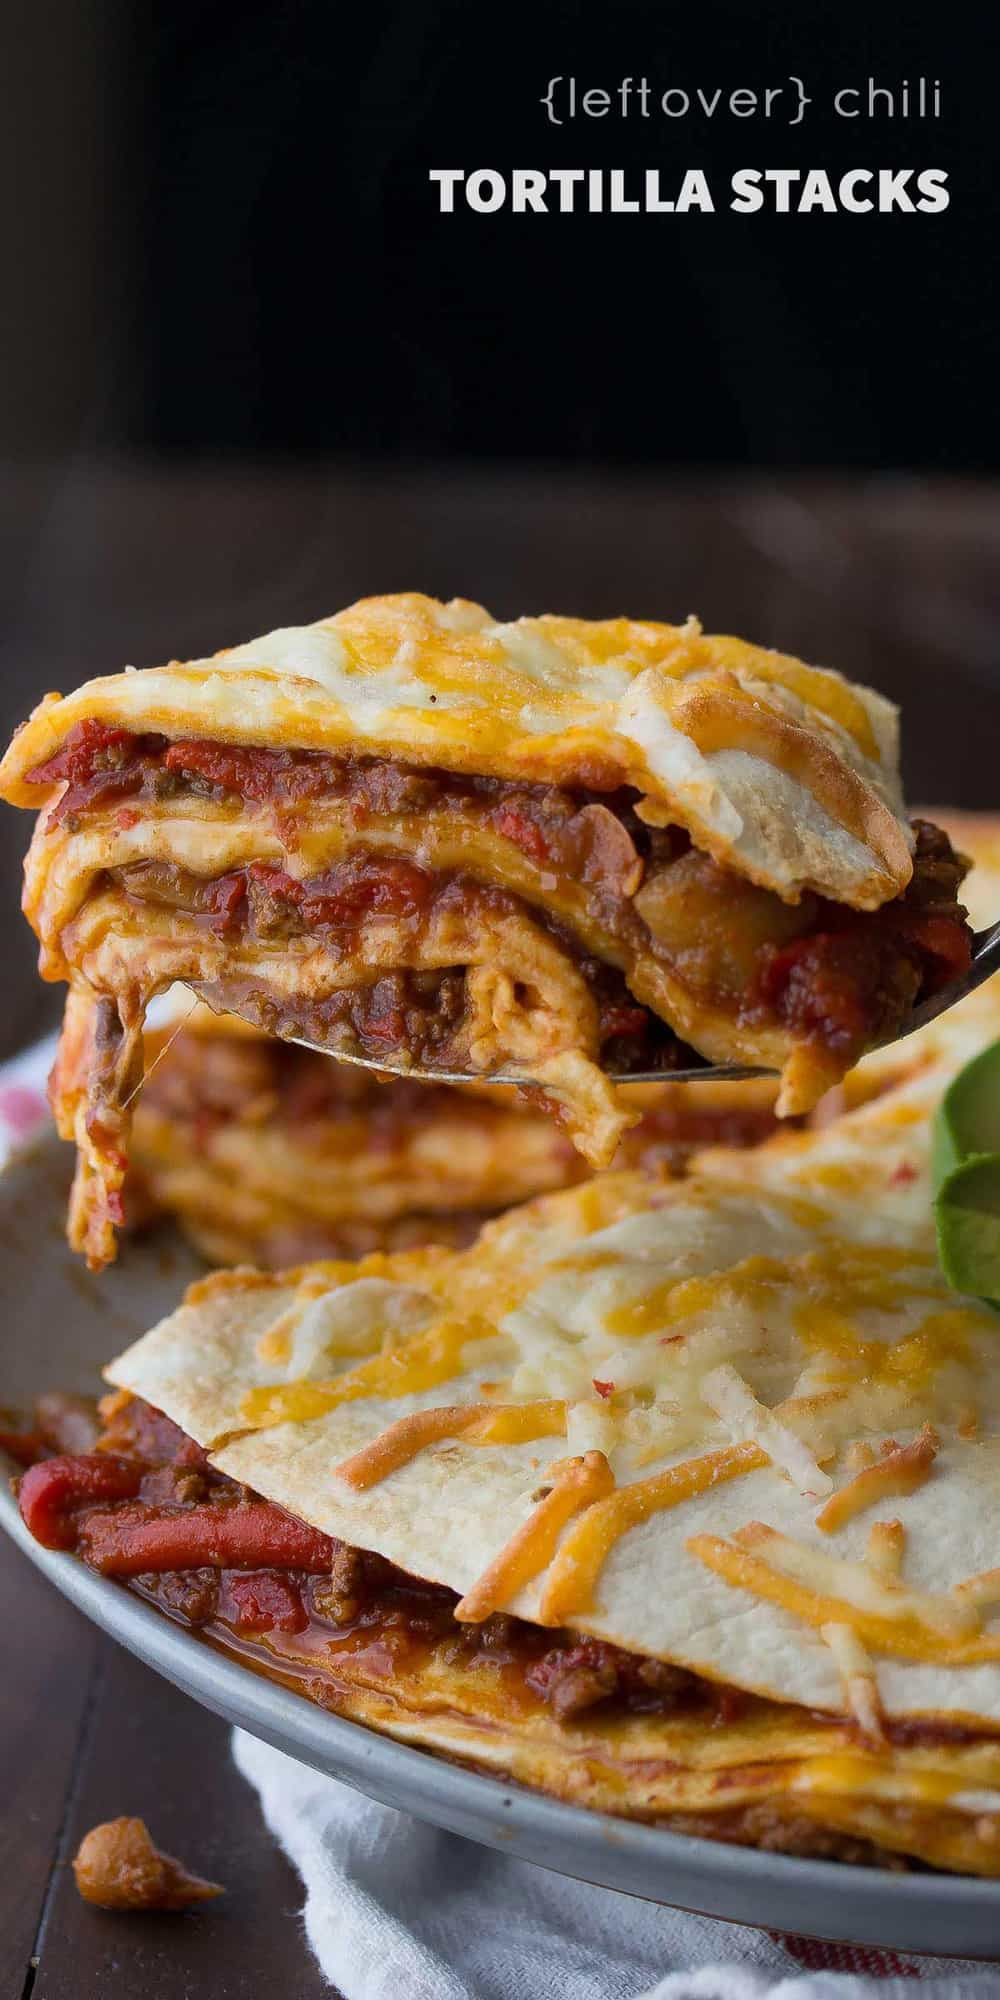 A fast and easy tortilla stack recipe that spreads leftover chili between tortillas with cheese. Ready in 25 minutes, and makes for an awesome weeknight dinner and packed lunch the next day!